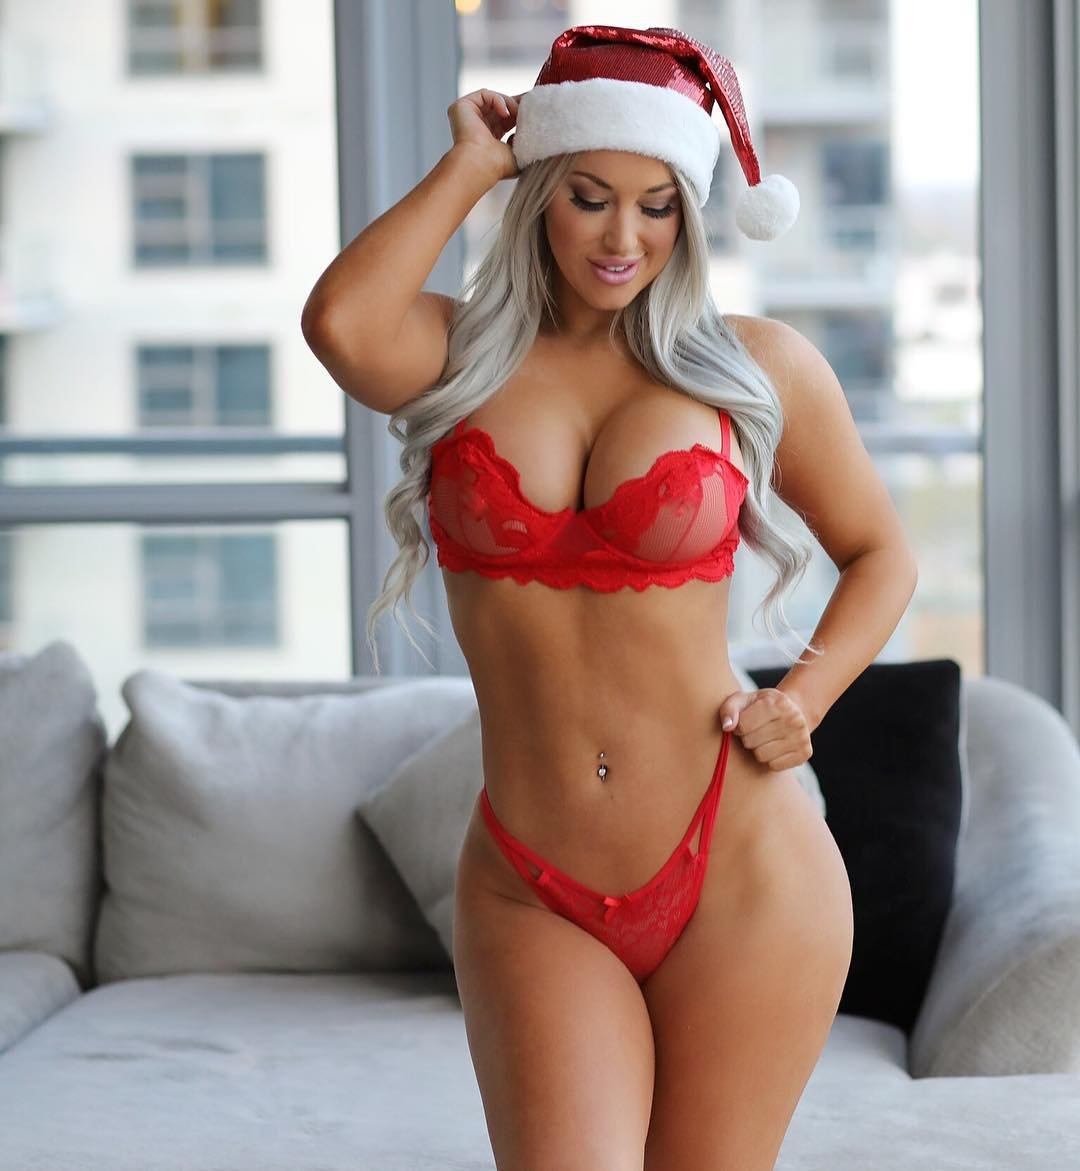 Laci kay somers playboy